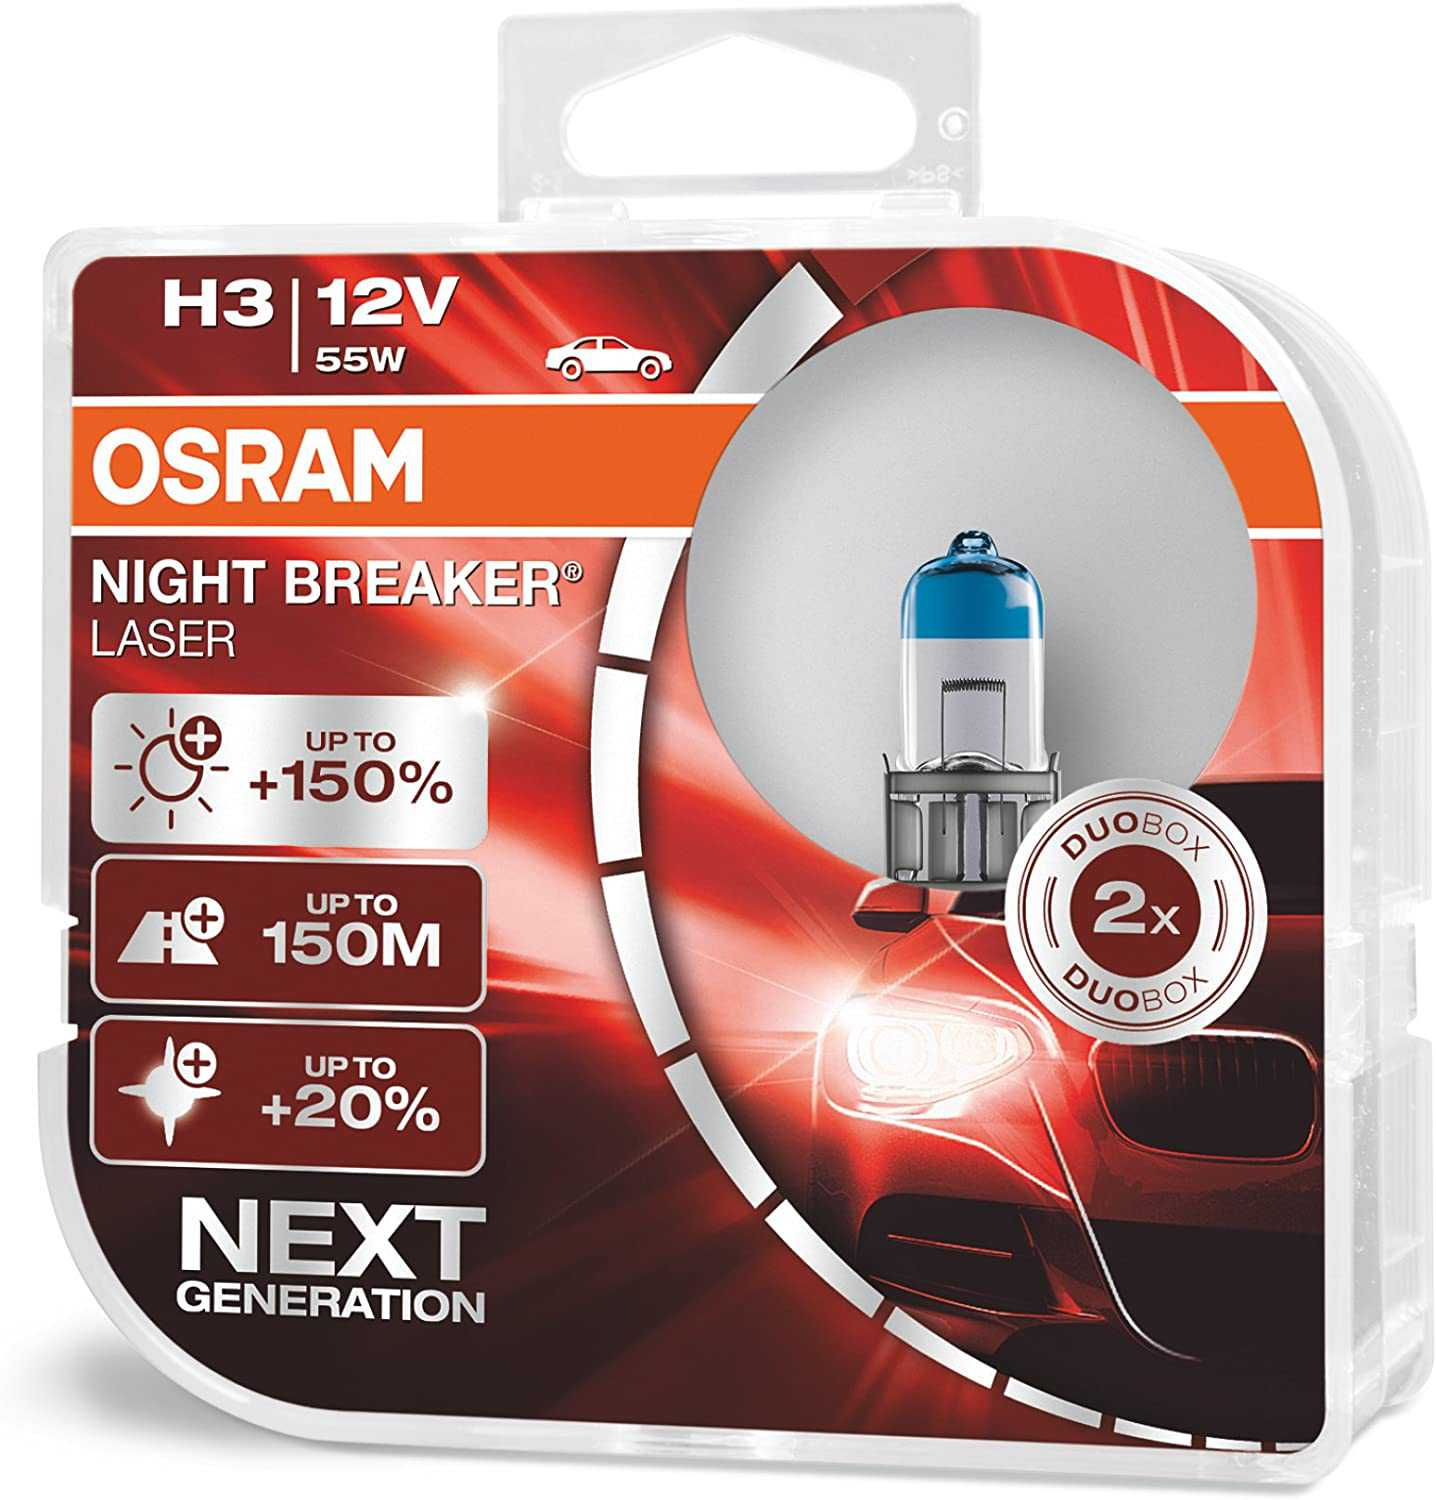 Osram H3 Night Breaker Laser Kit